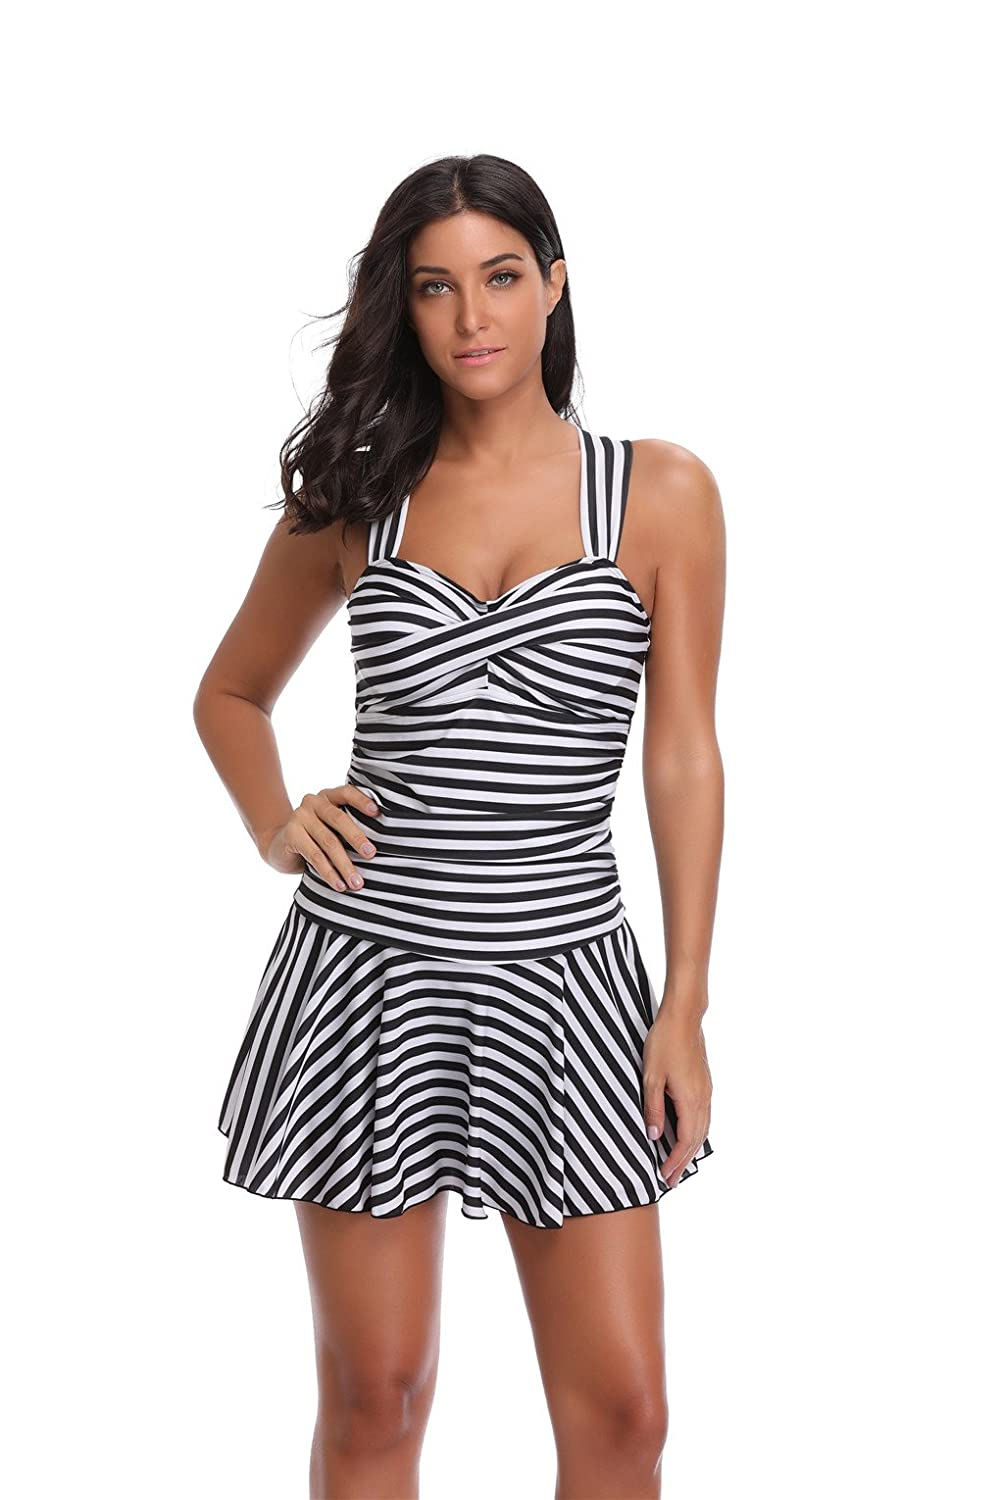 e24c54dc7ef Leoparts Striped Swim Dress One Piece Bathing Suit Skirted Swimsuits for Women  Swimwear at Amazon Women's Clothing store: